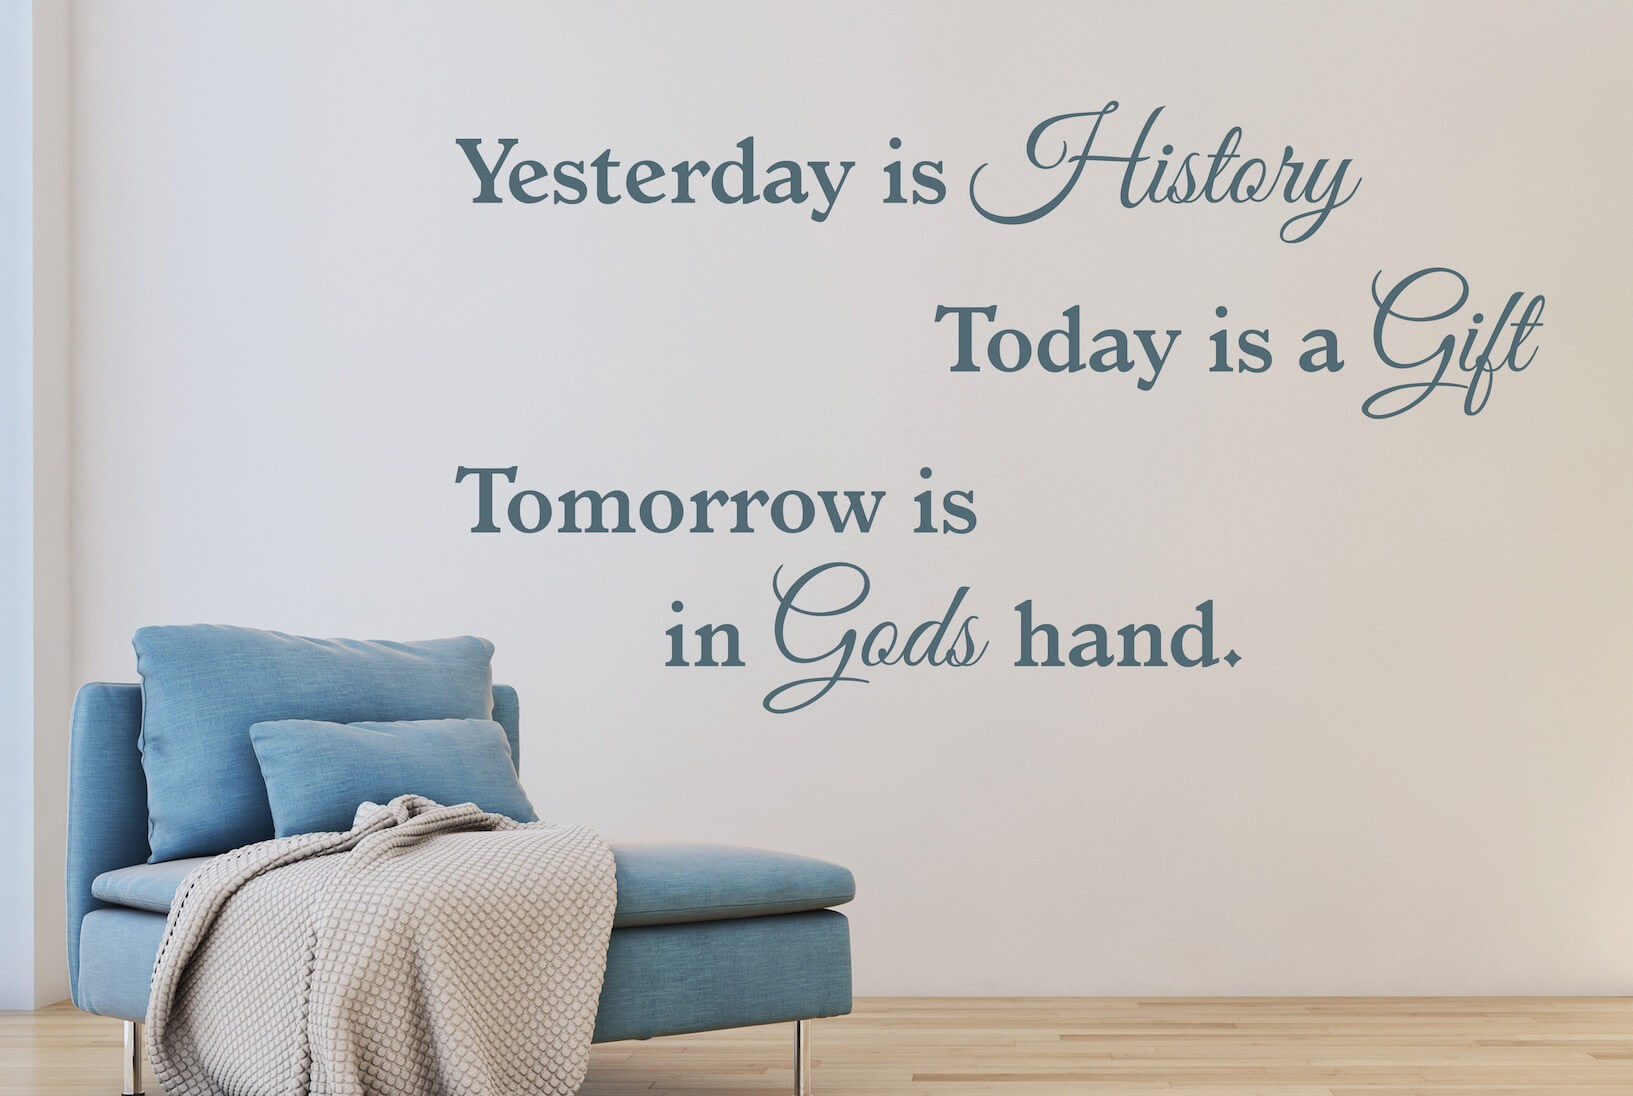 https://www.meermetstickers.nl/media/catalog/product/cache/1/image/9df78eab33525d08d6e5fb8d27136e95/y/e/yesterday-is-history-today-is-a-gift-tomorrow-is-in-gods-hand-muursticker-sfeer.jpg